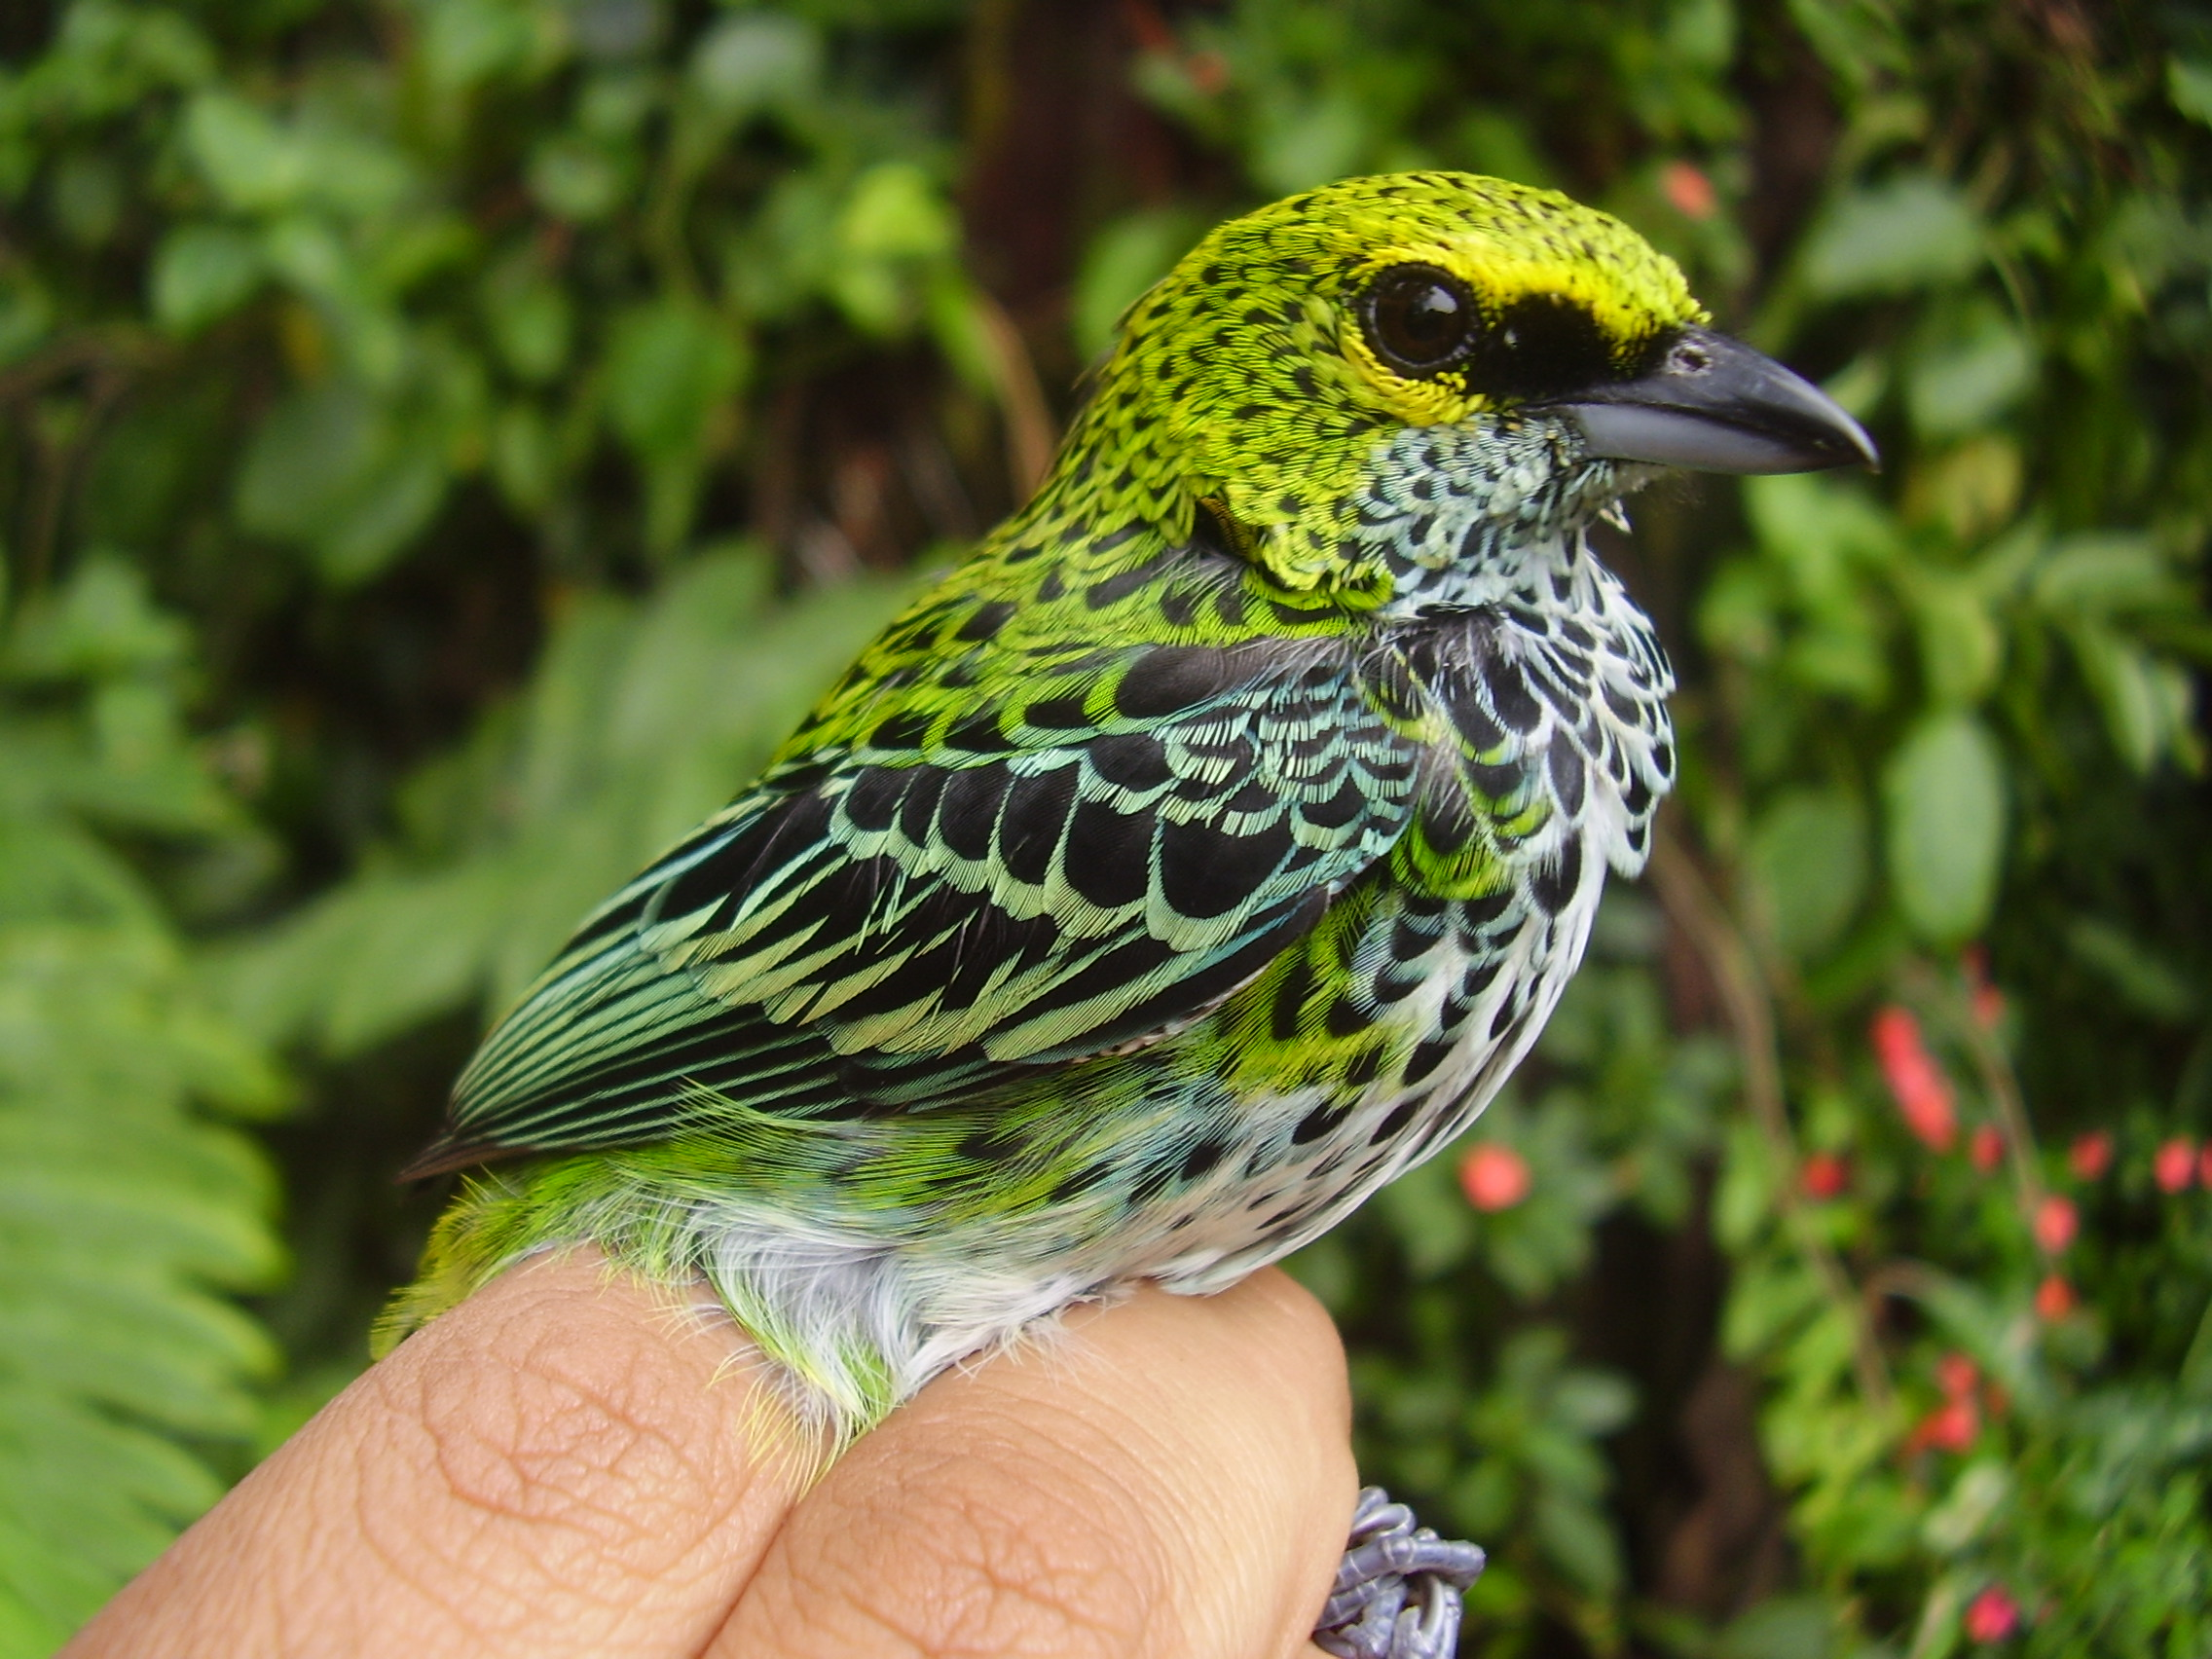 Speckled tanager, with green, yellow, black, and white feathers